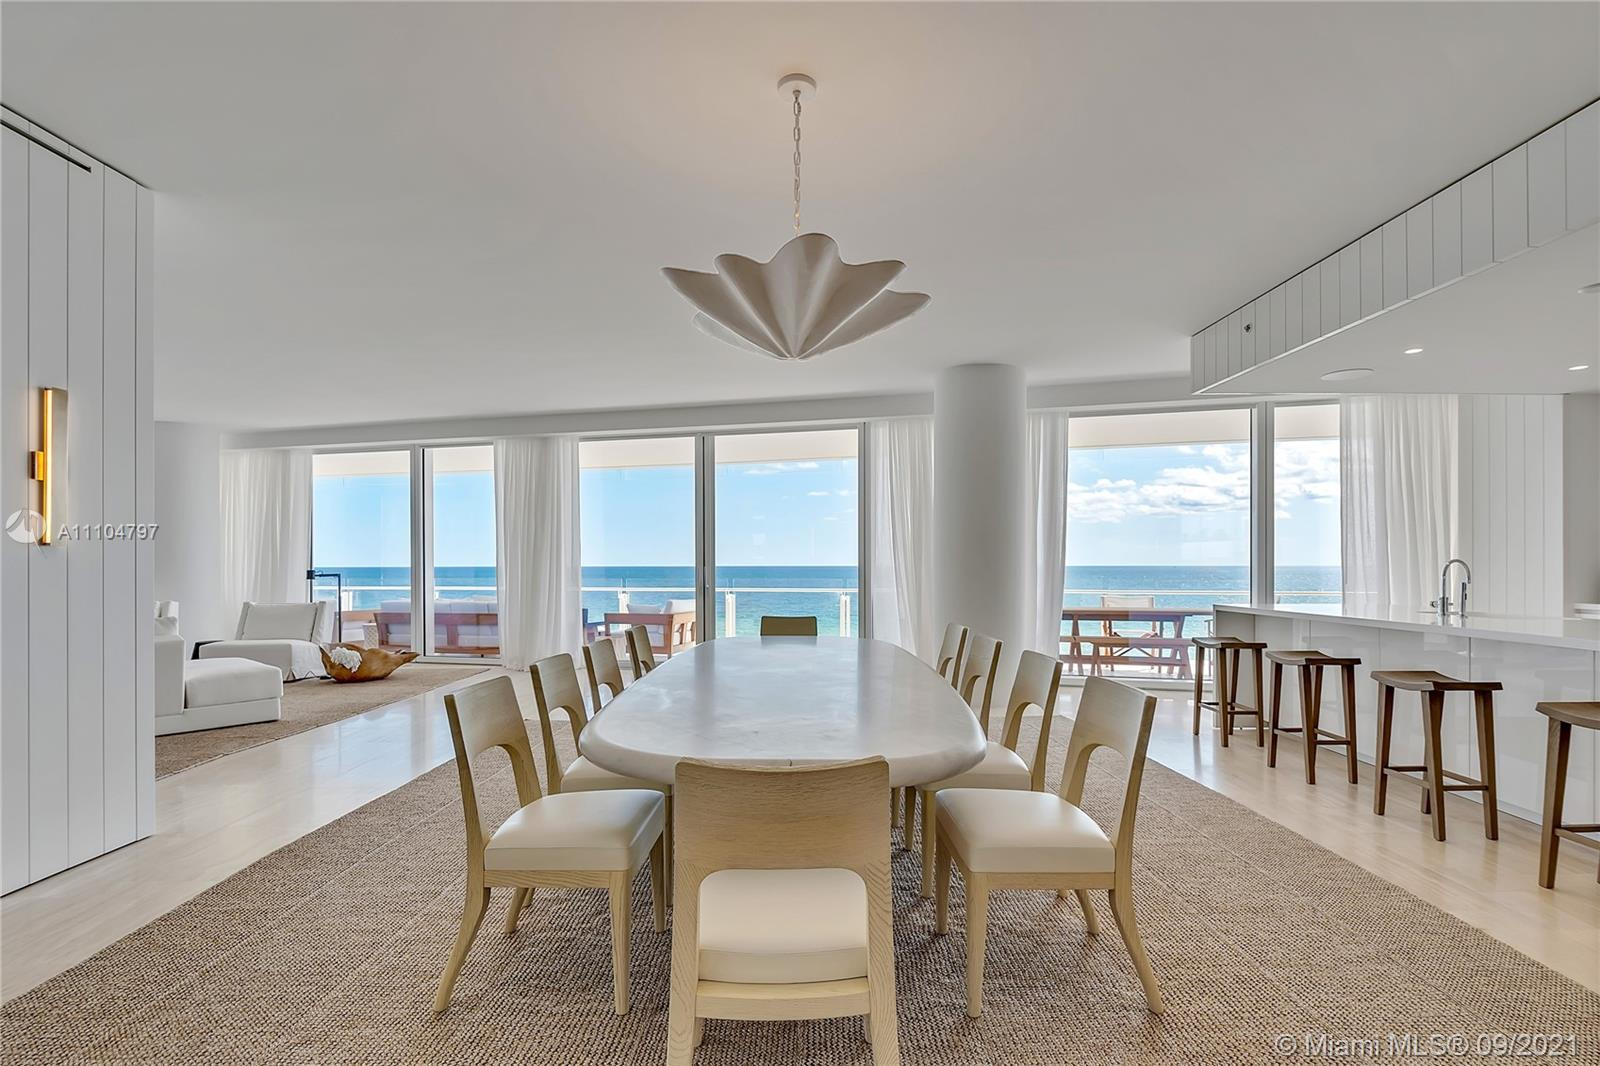 One-of-a-kind oceanfront corner residence in the Four Seasons @ The Surf Club. Classic & contemporar